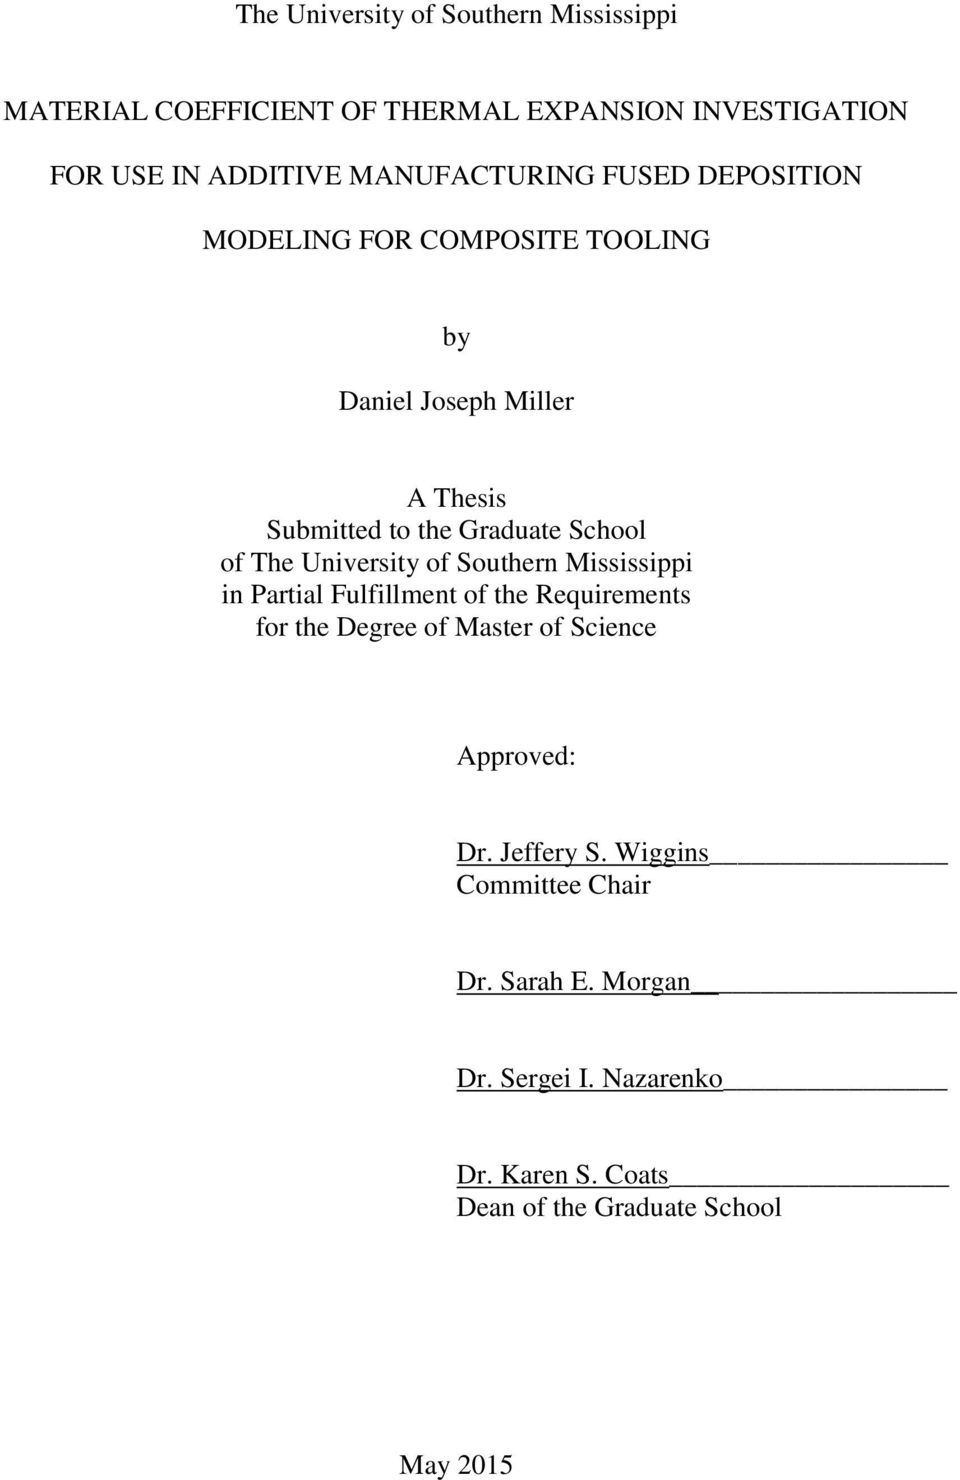 a thesis submitted in partial fulfillment of the requirements for the degree of doctor of philosophy Manual for the preparation of thesis   doctor of philosophy   in partial fulfillment of the requirements  for the degree of .